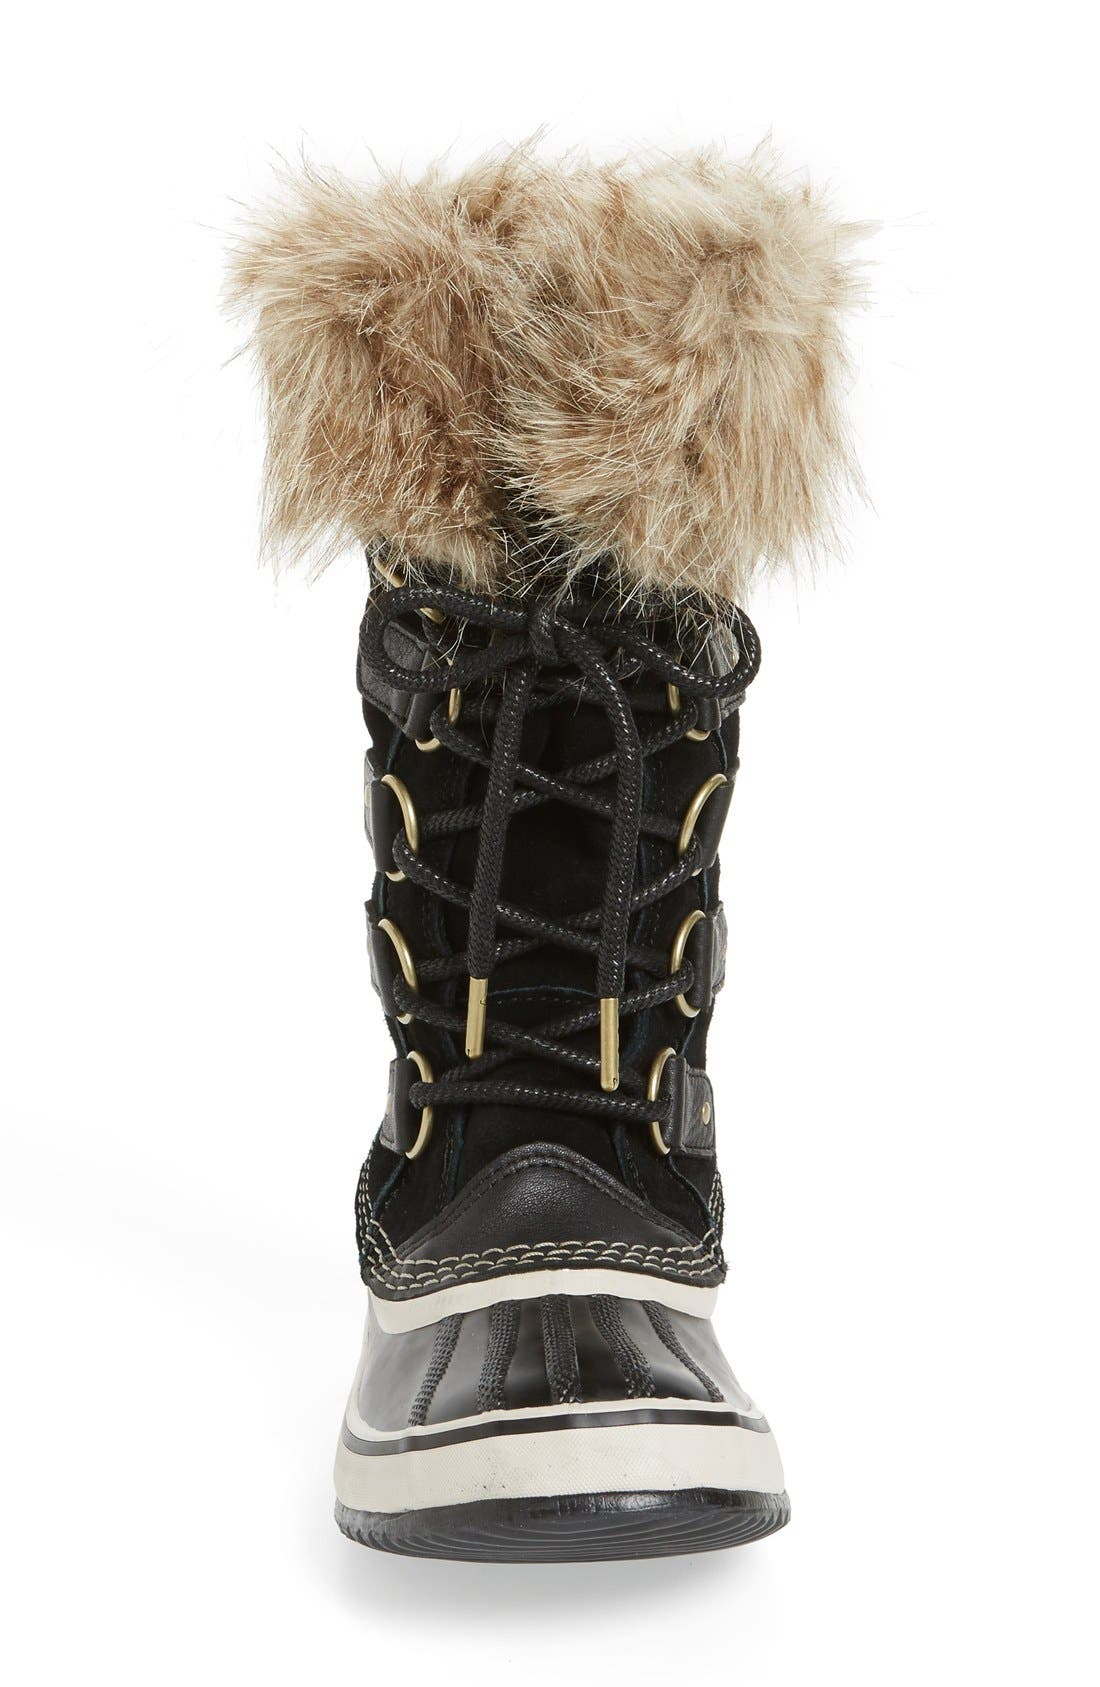 'Joan of Arctic' Waterproof Snow Boot,                             Alternate thumbnail 3, color,                             BLACK/ STONE